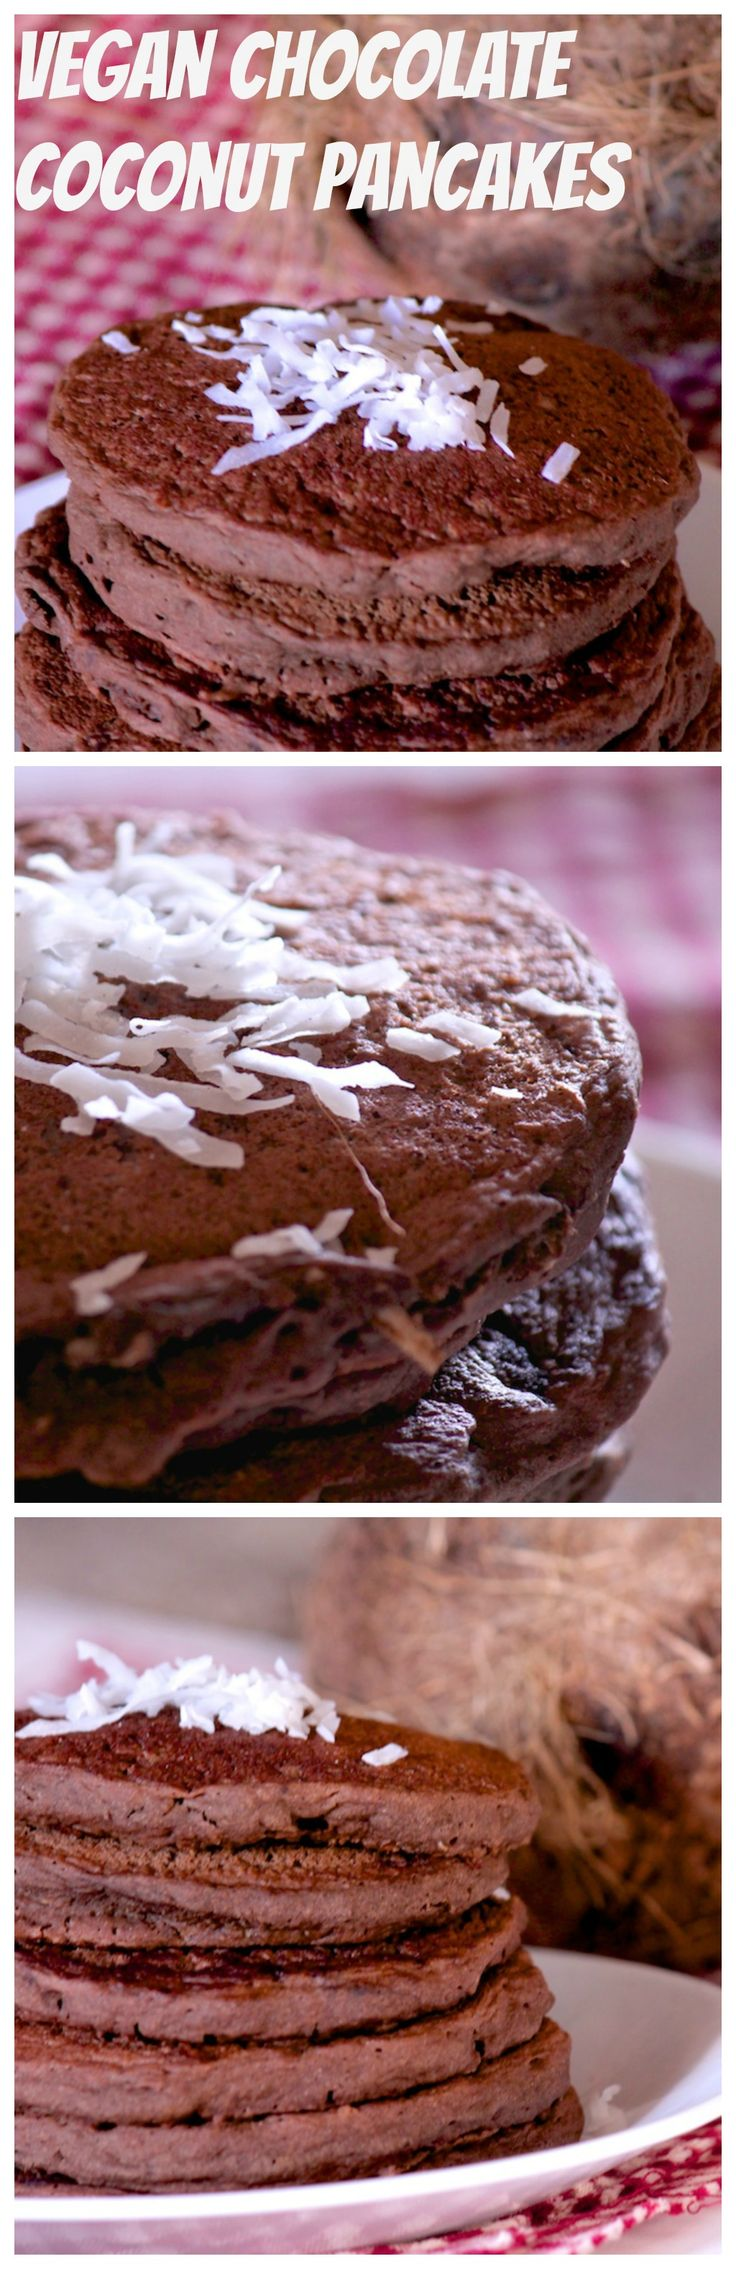 Vegan Chocolate Coconut Pancakes - These light and fluffy pancakes are rich and to die for - with no oil and no added sugar, they are delicious whole food pancakes!